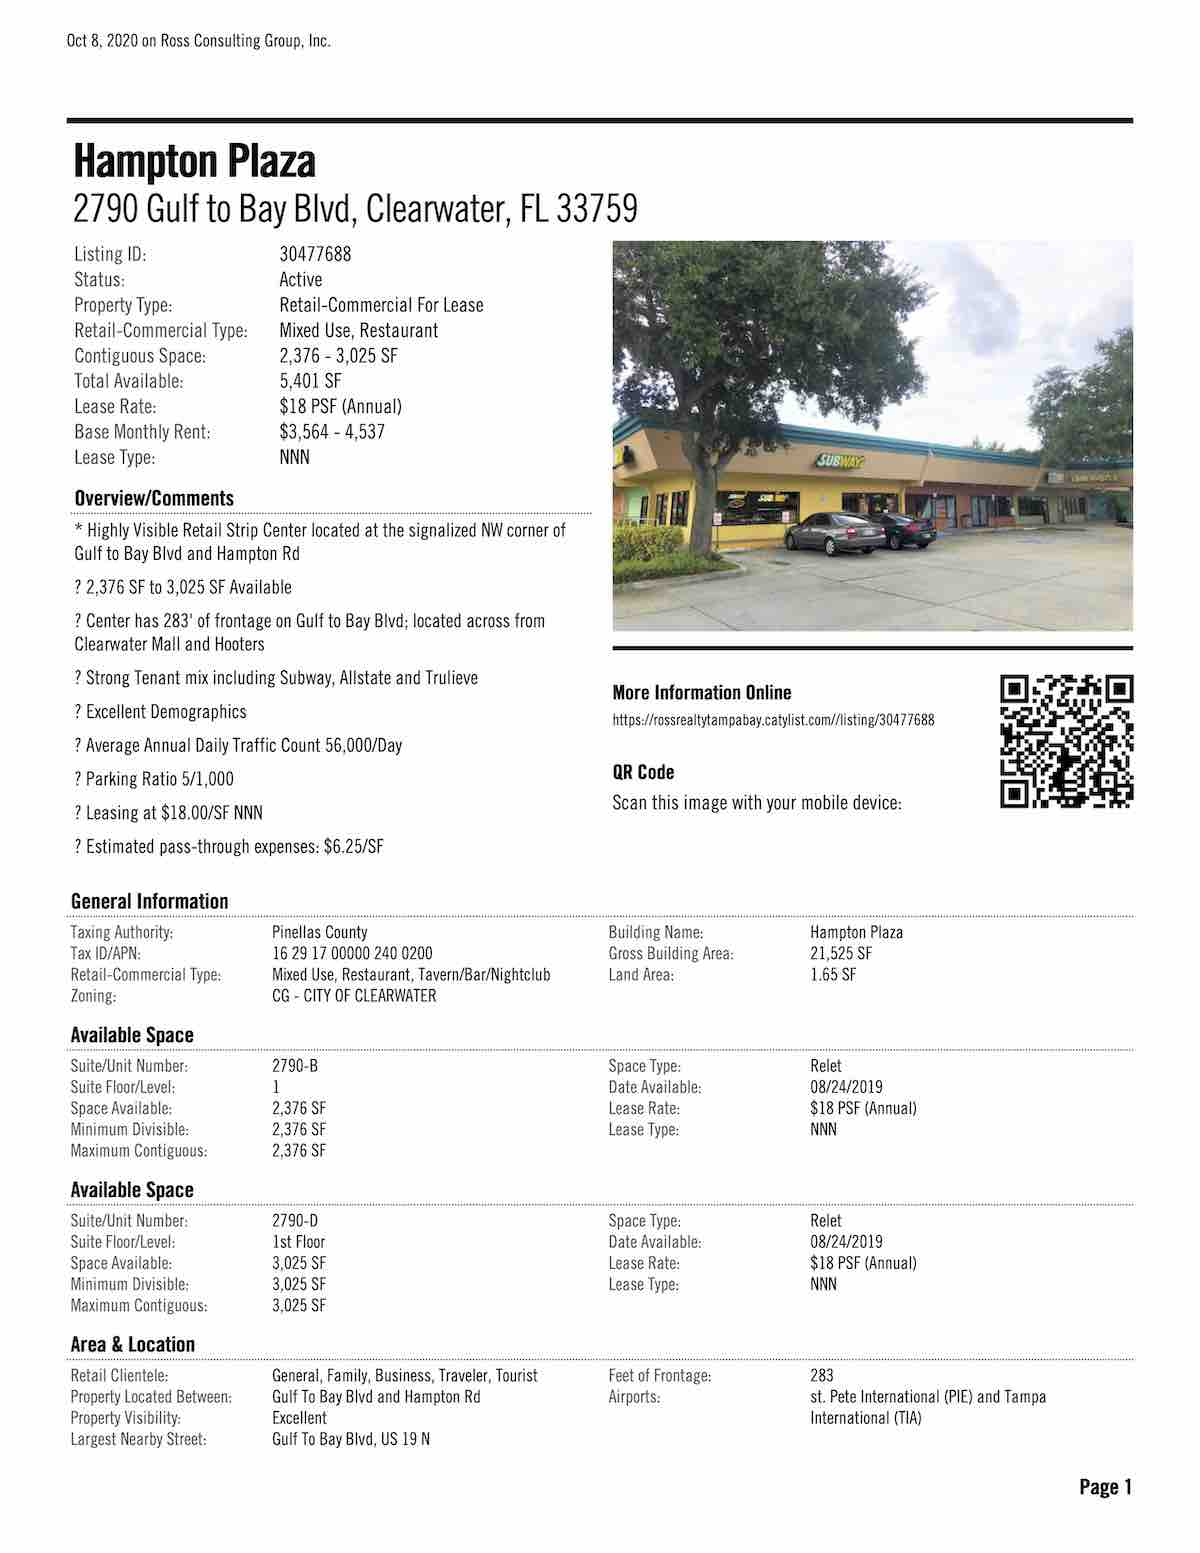 Tampa Commercial Real Estate - FOR LEASE - Hampton Plaza - 2790 Gulf to Bay Blvd, Clearwater, FL 33759 P1